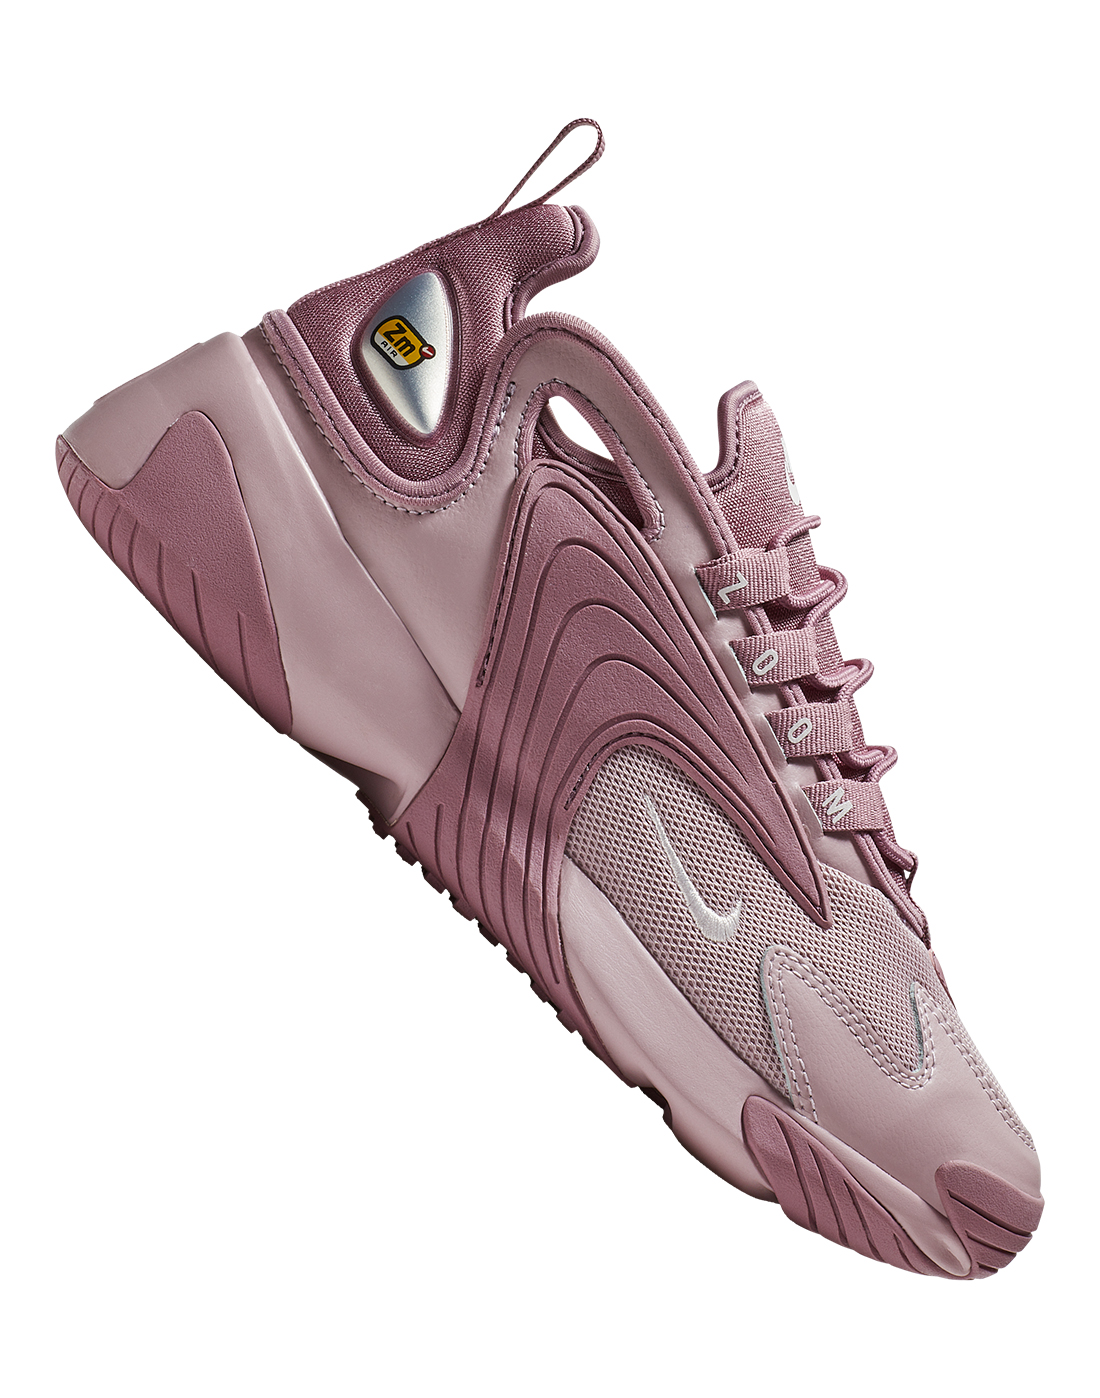 3a3ec8a6a1 Women's Pink Nike Zoom 2K | Life Style Sports